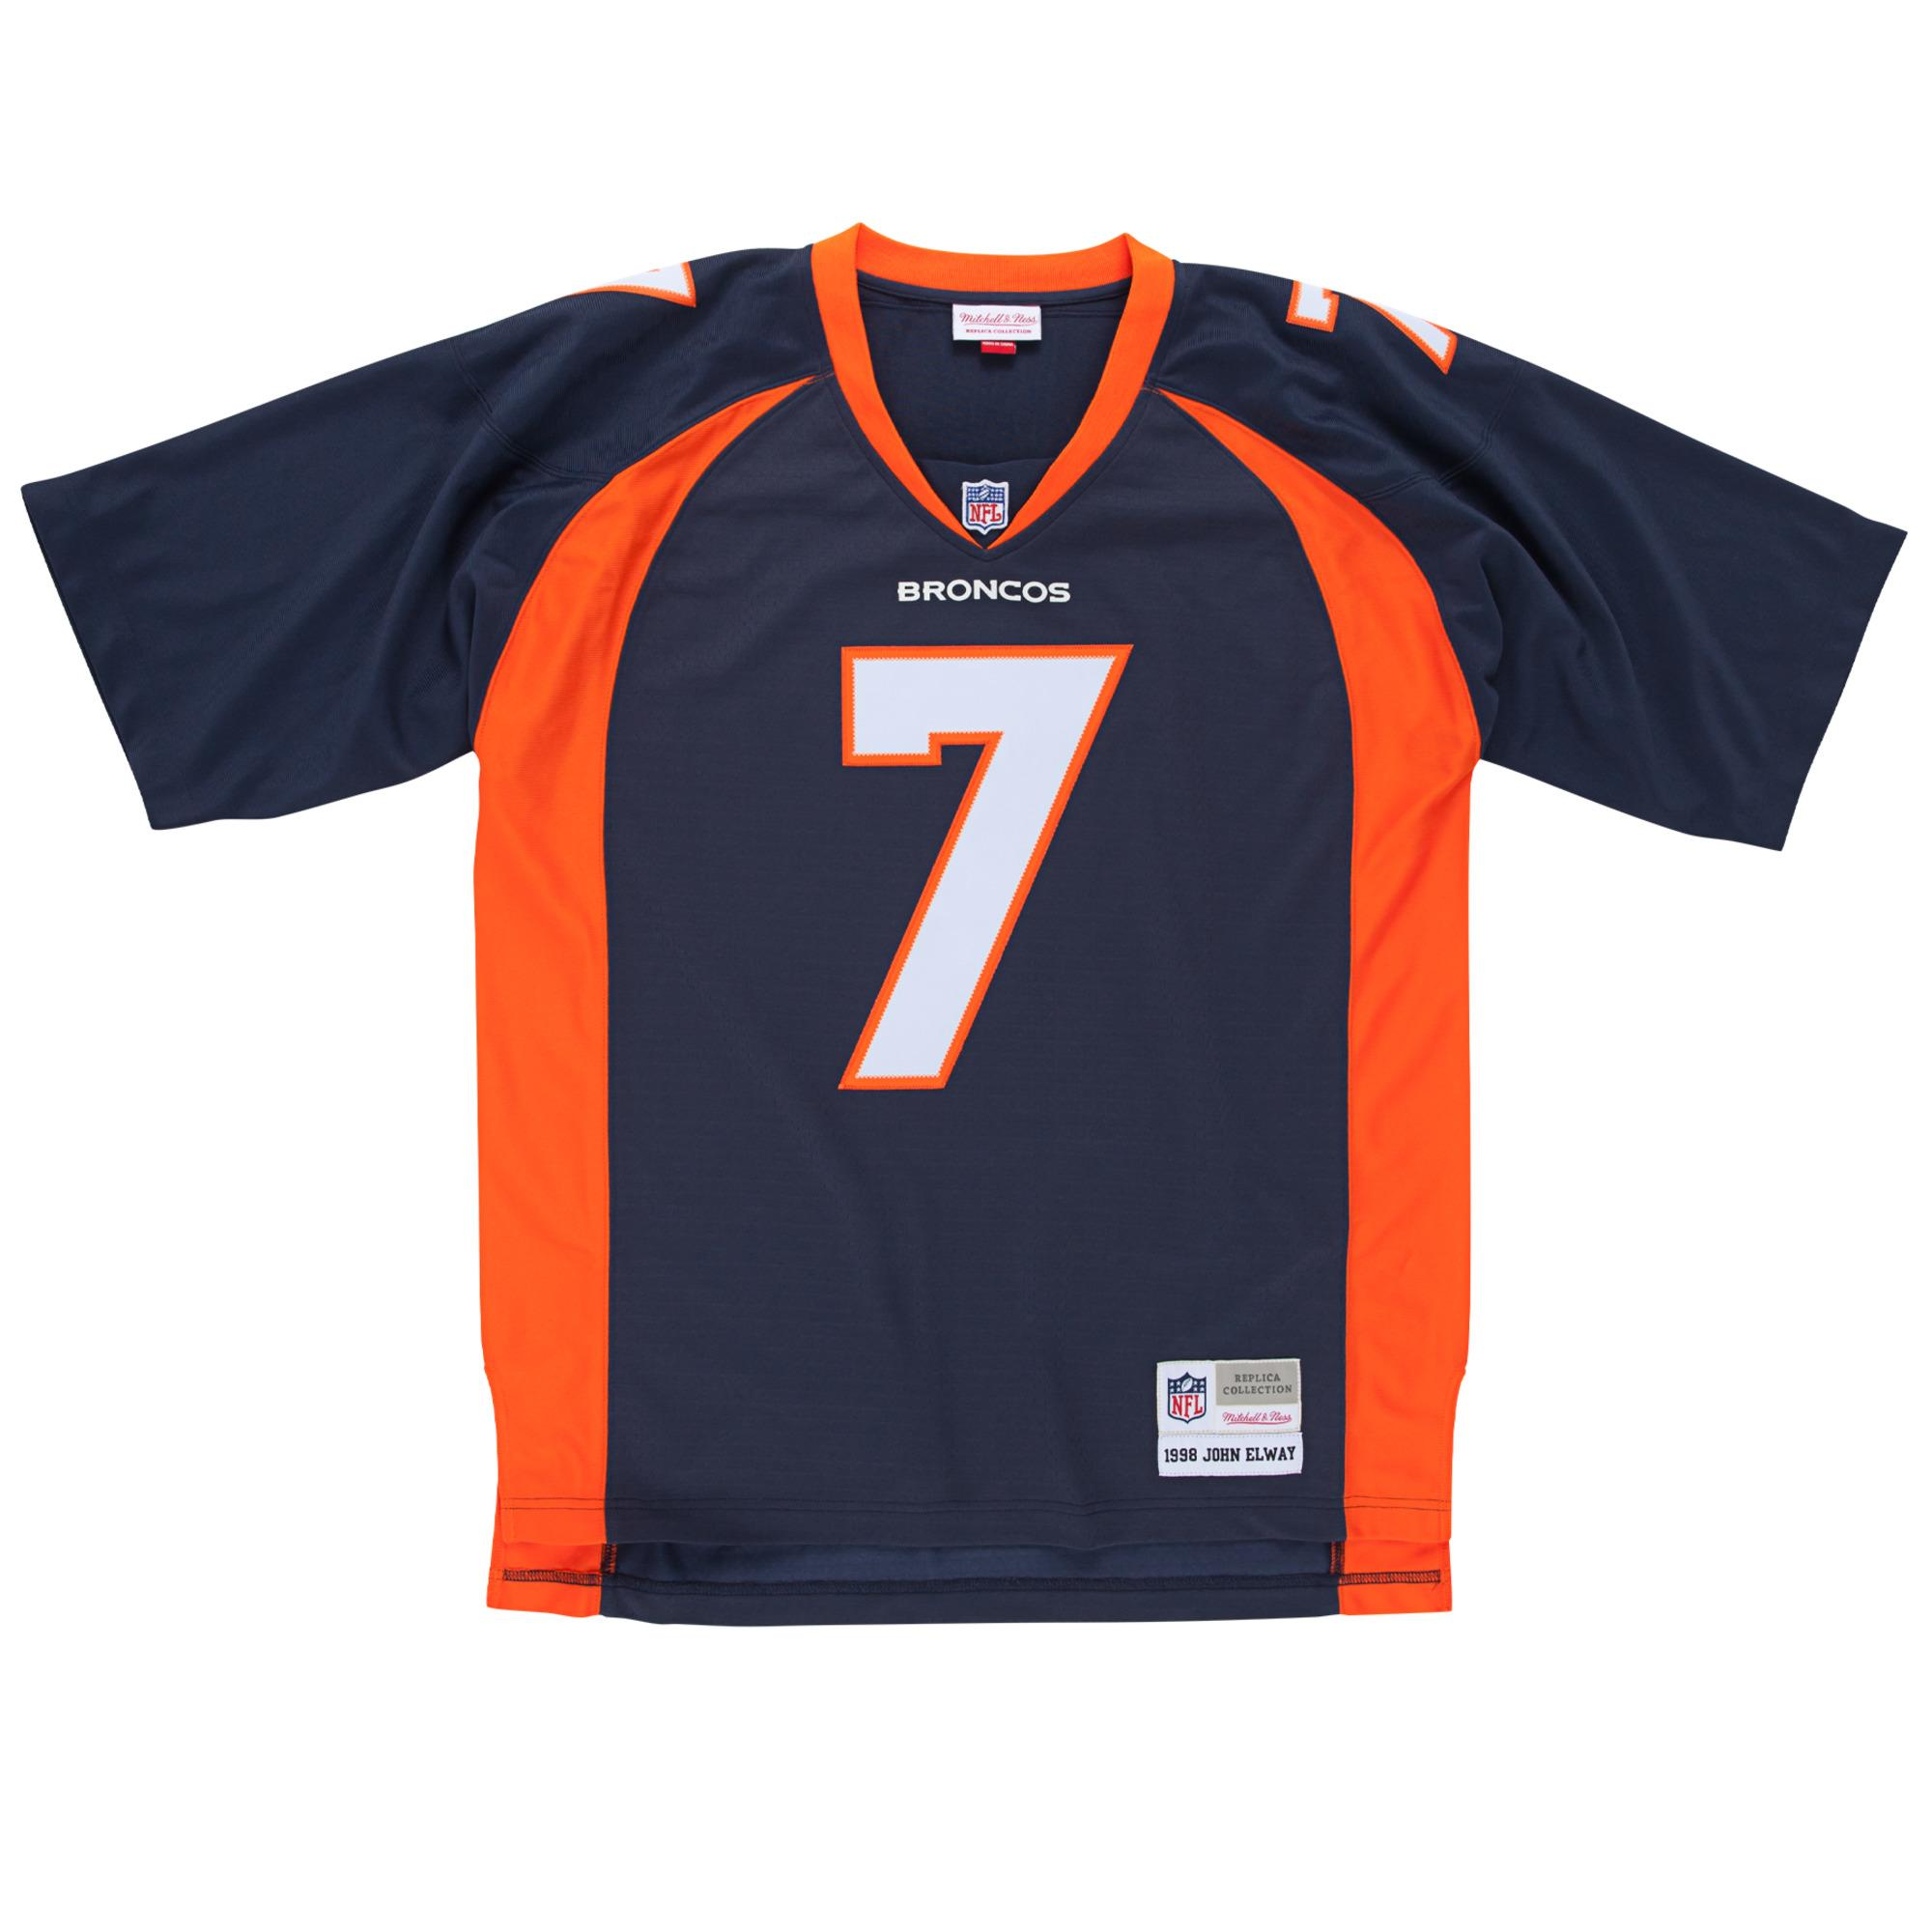 c141ca95fef8 ... Legacy Jersey- John Elway Our Price  £120.00 ...